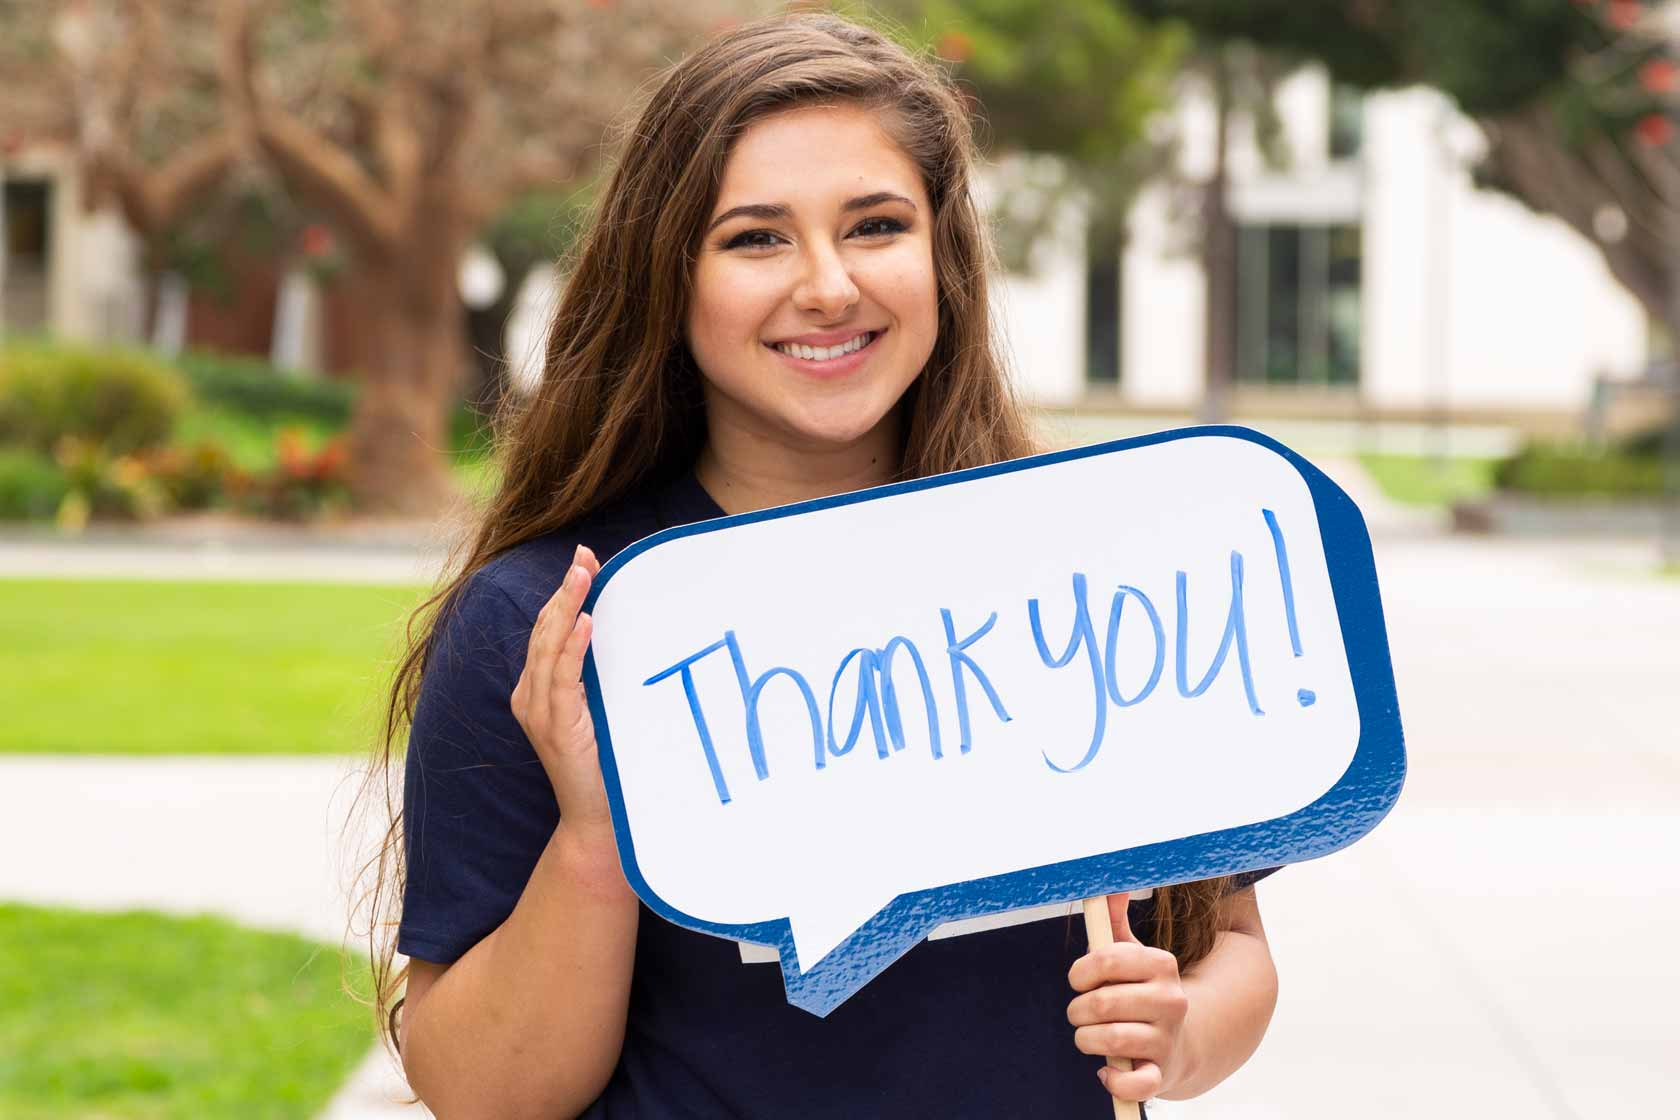 Student with thank you sign